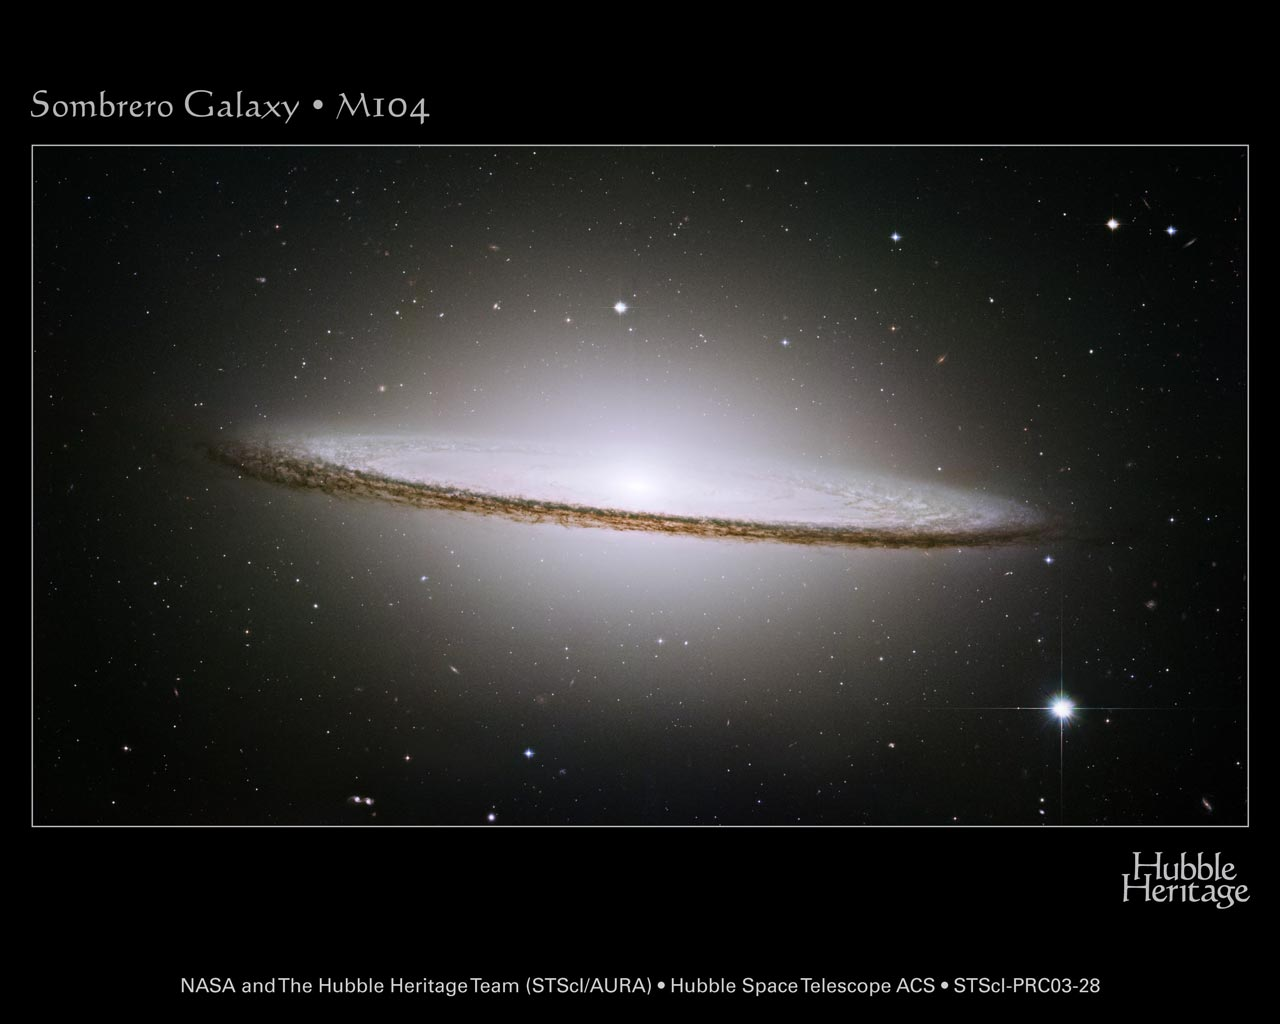 apod: 2003 october 8 - the sombrero galaxy from hst